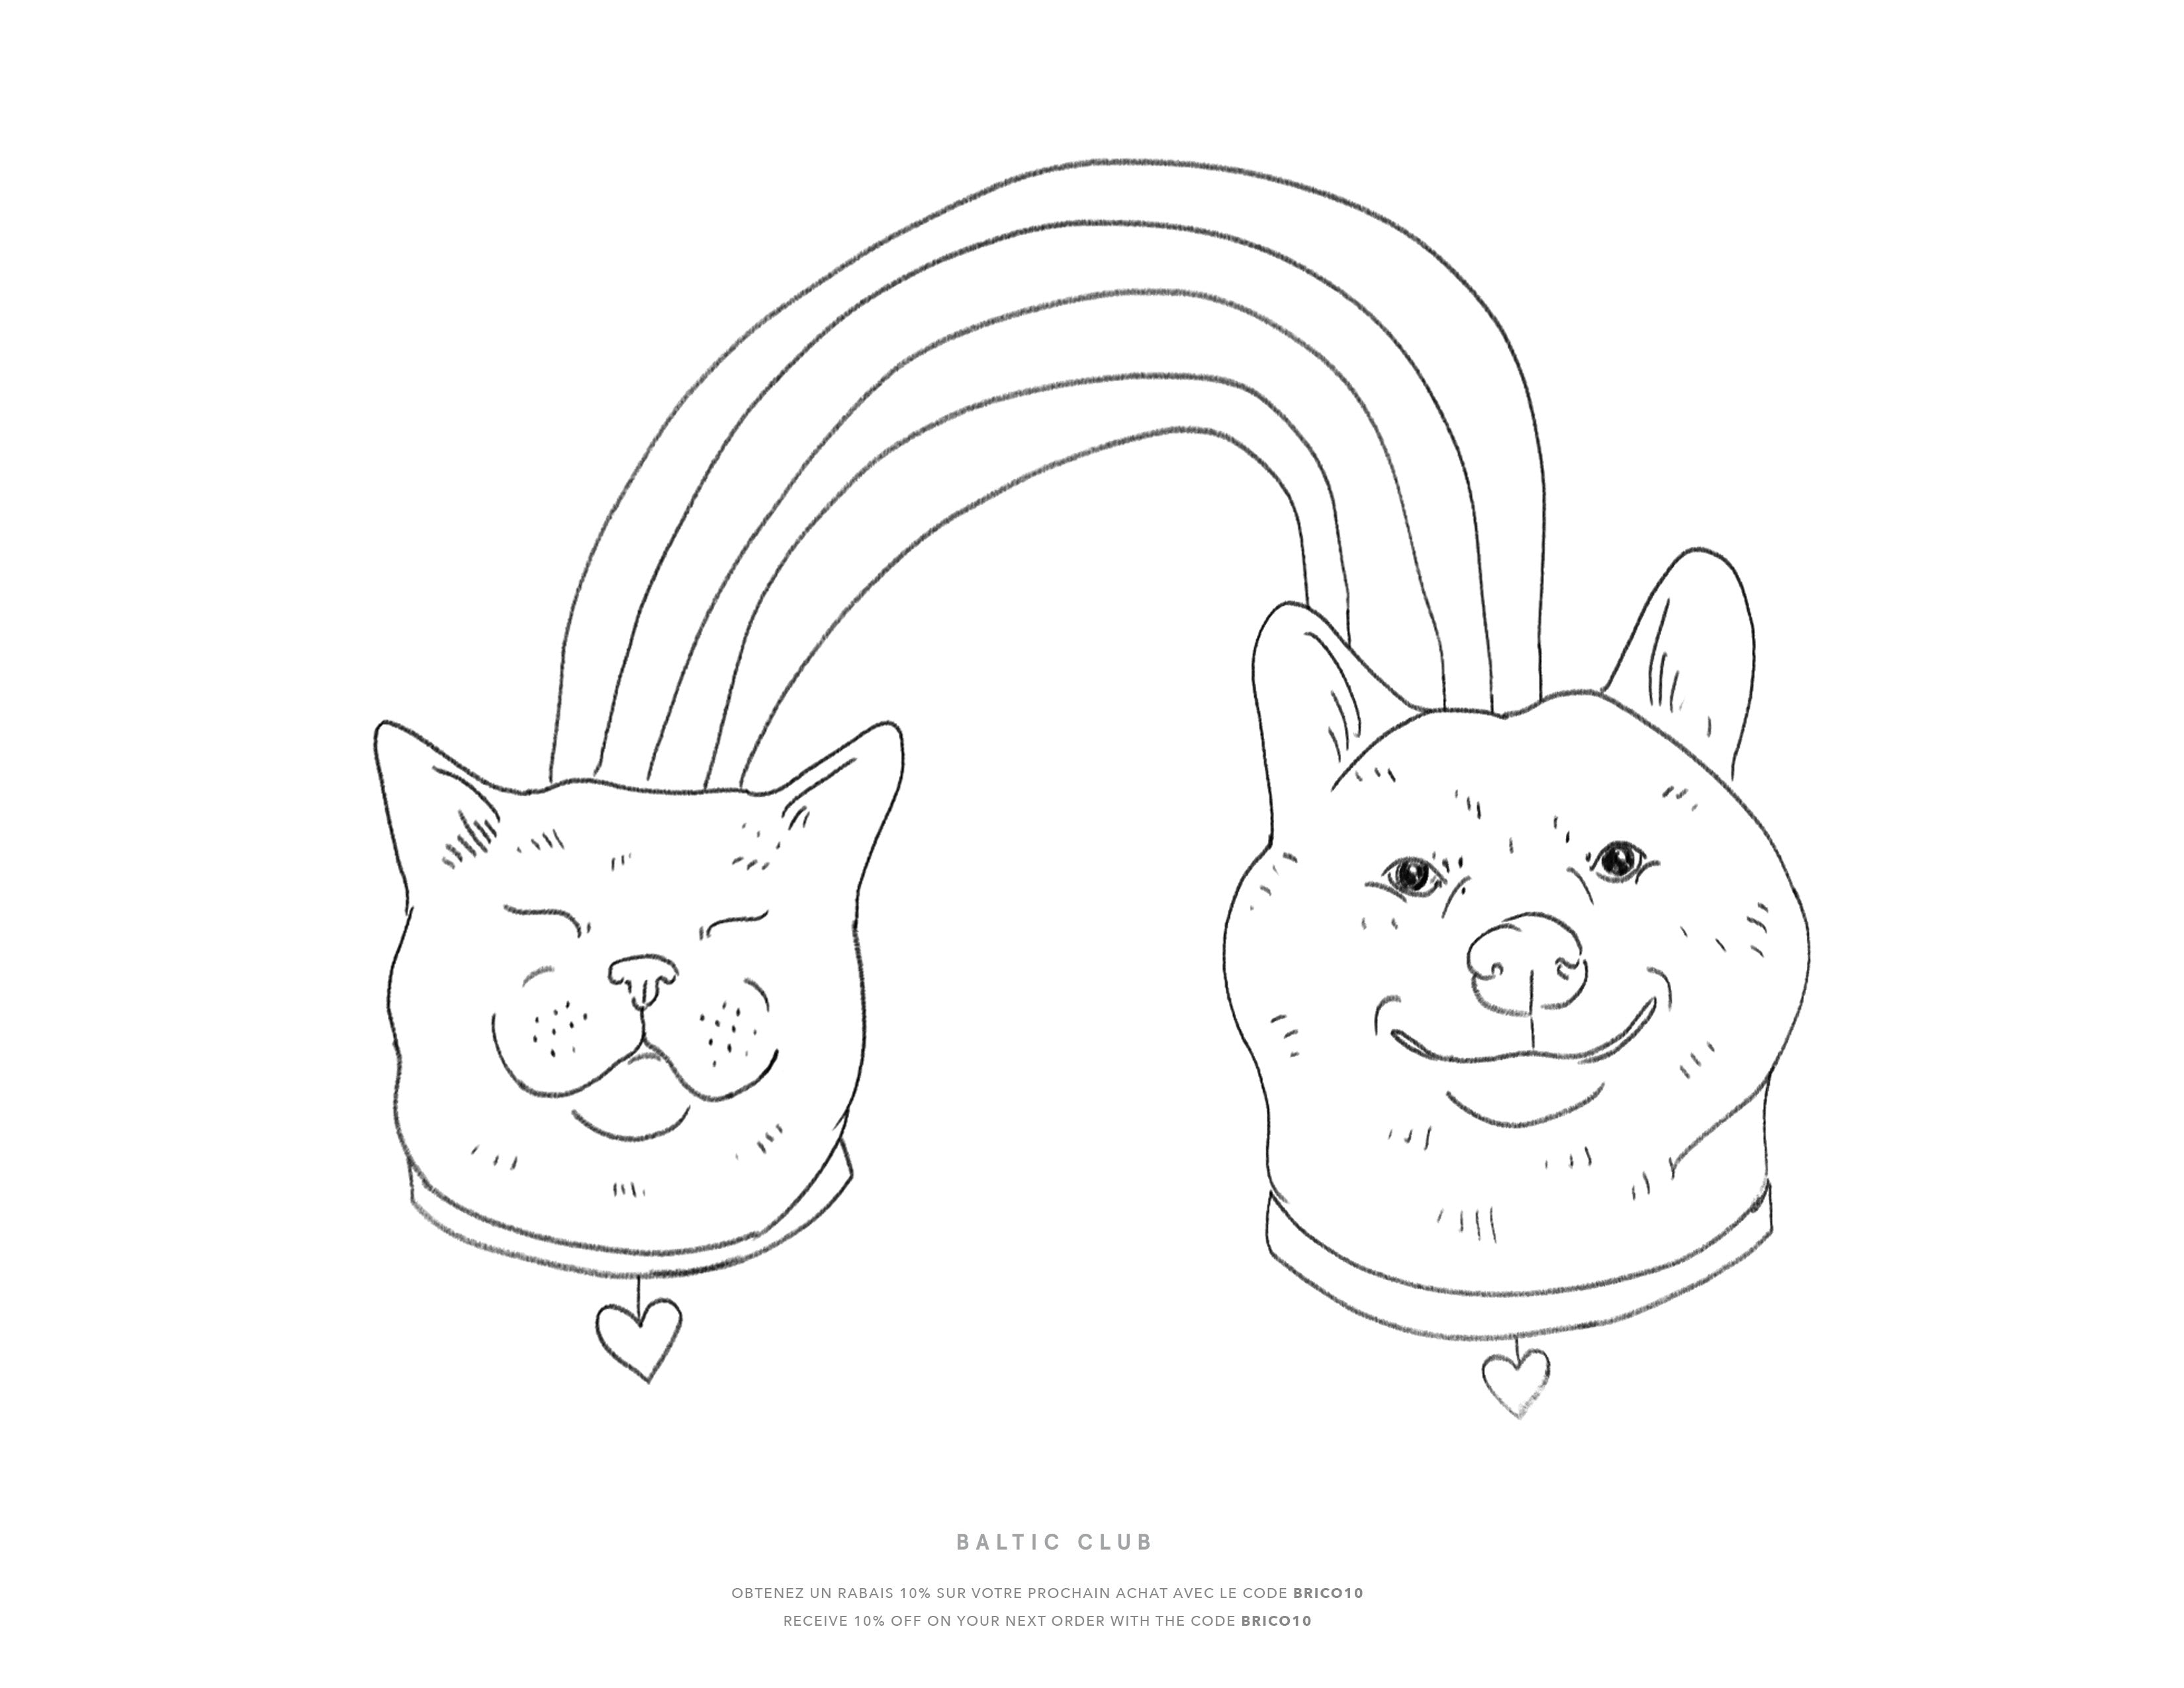 - The Rainbow Coloring Sheet